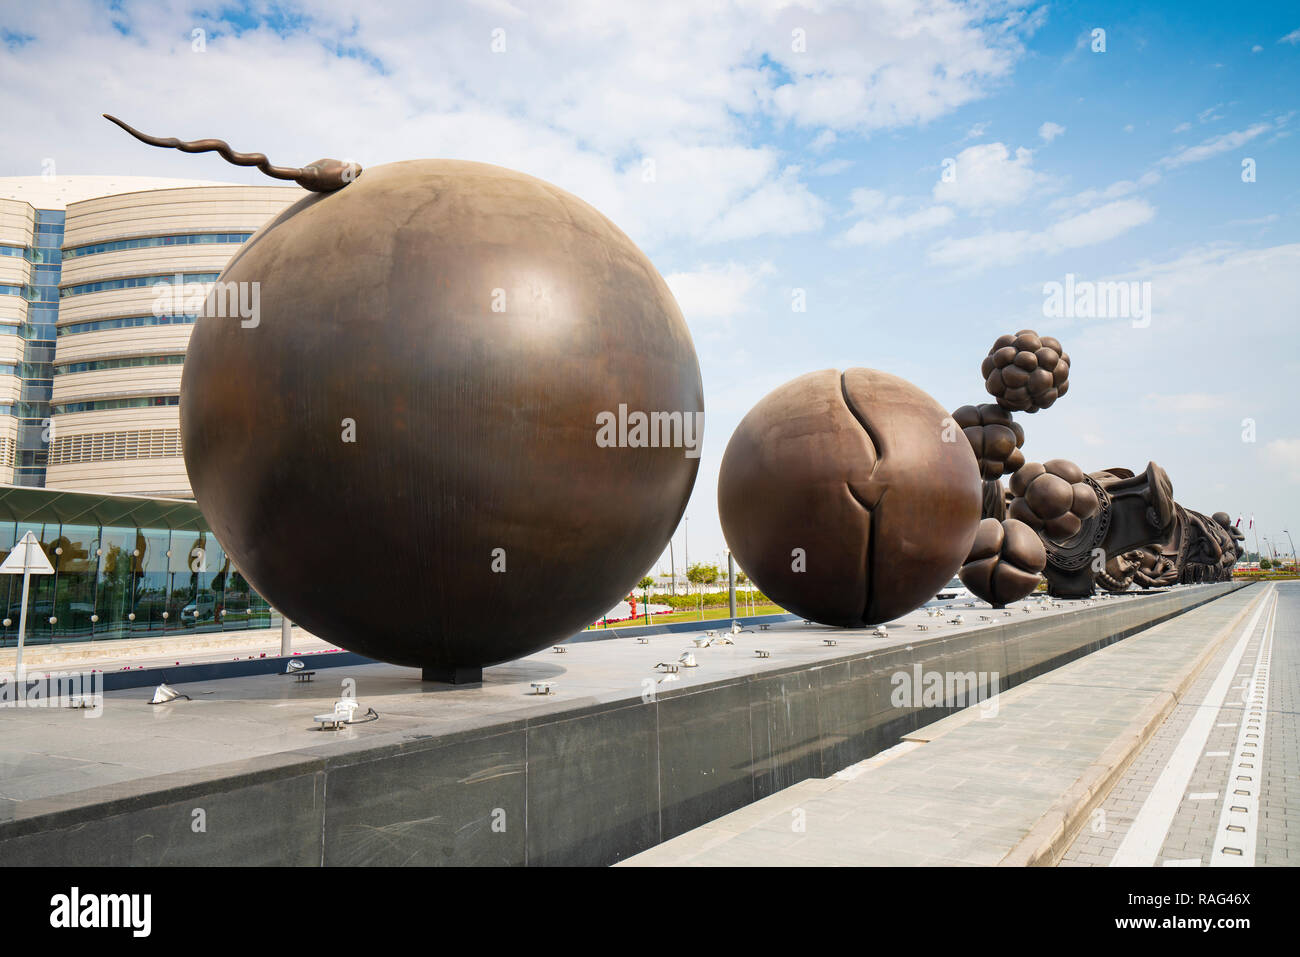 New sculptures showing stages of childbirth in the uterus by Damien Hirst at Sidra Hospital  in Doha, Qatar - Stock Image